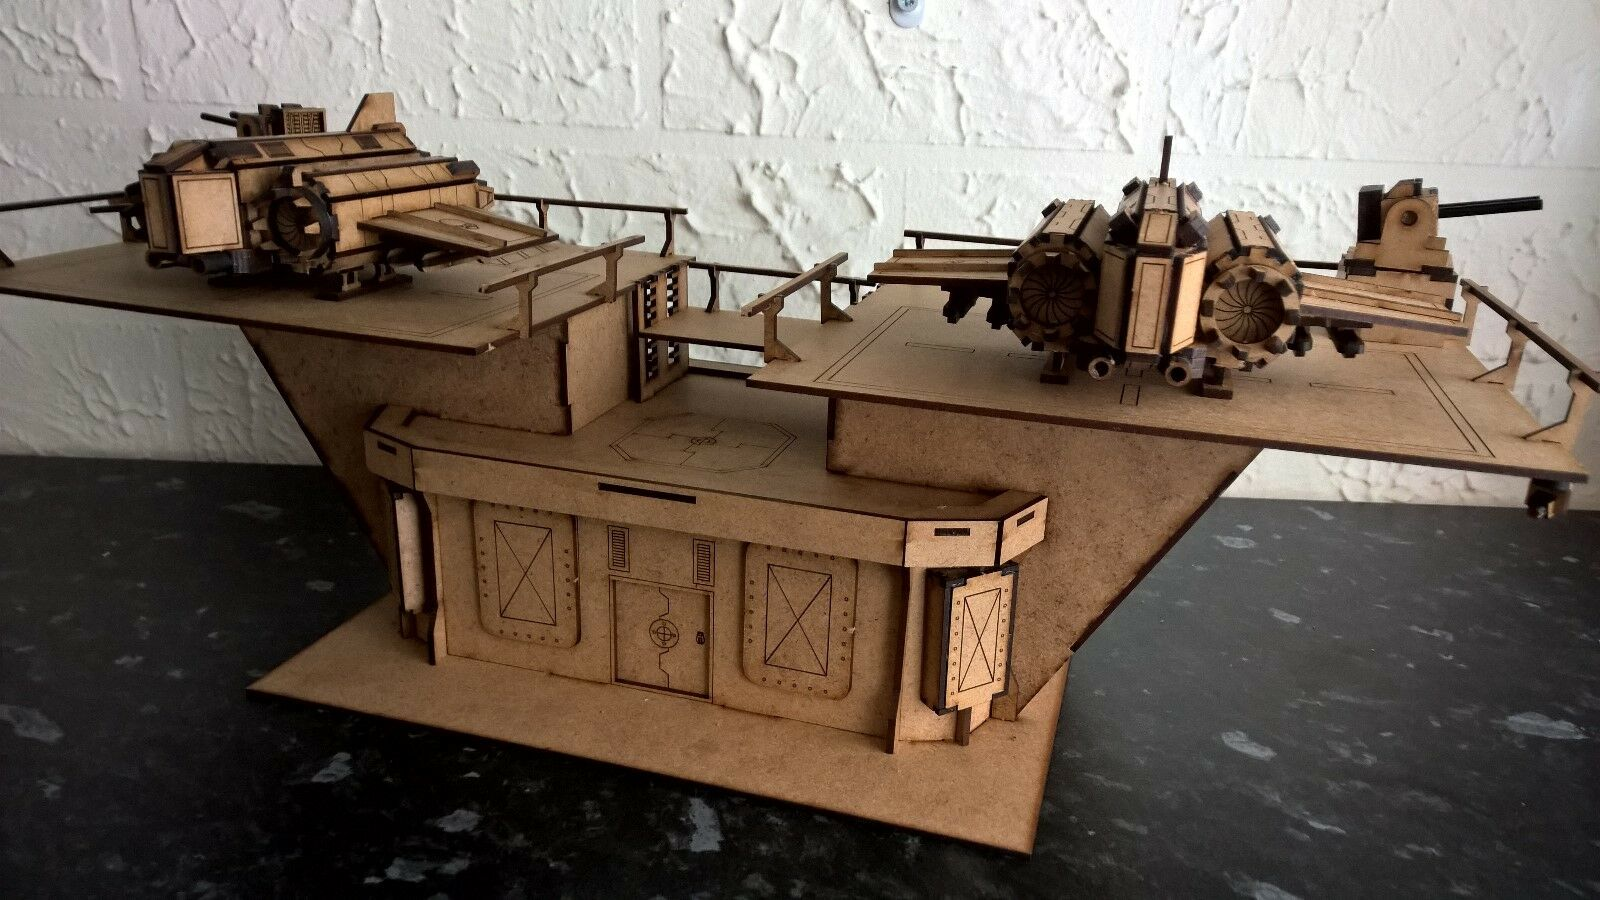 Fighter defence warhammer 40k wargame infinity building terrain scenary Legion